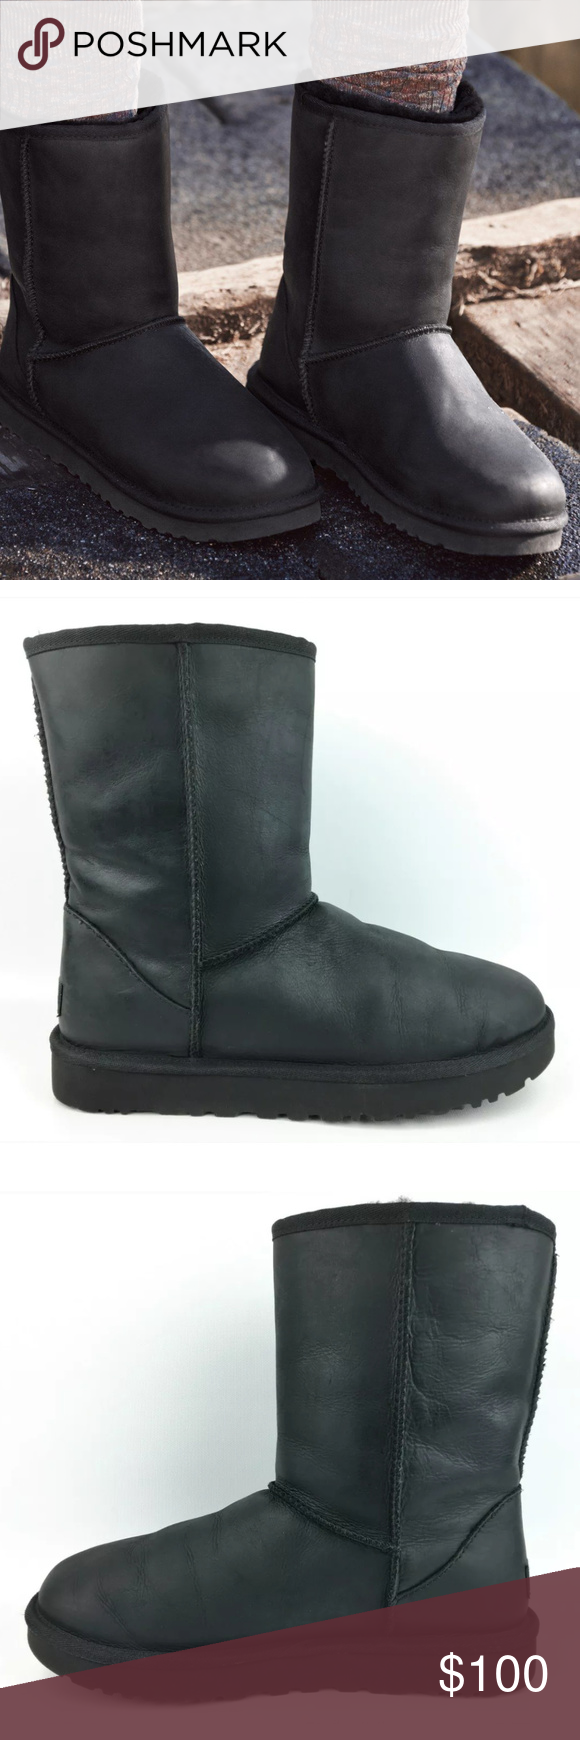 f5aa704bcd4 UGG Classic Short Leather Black Boots Normal wear, Boots have scuffs ...